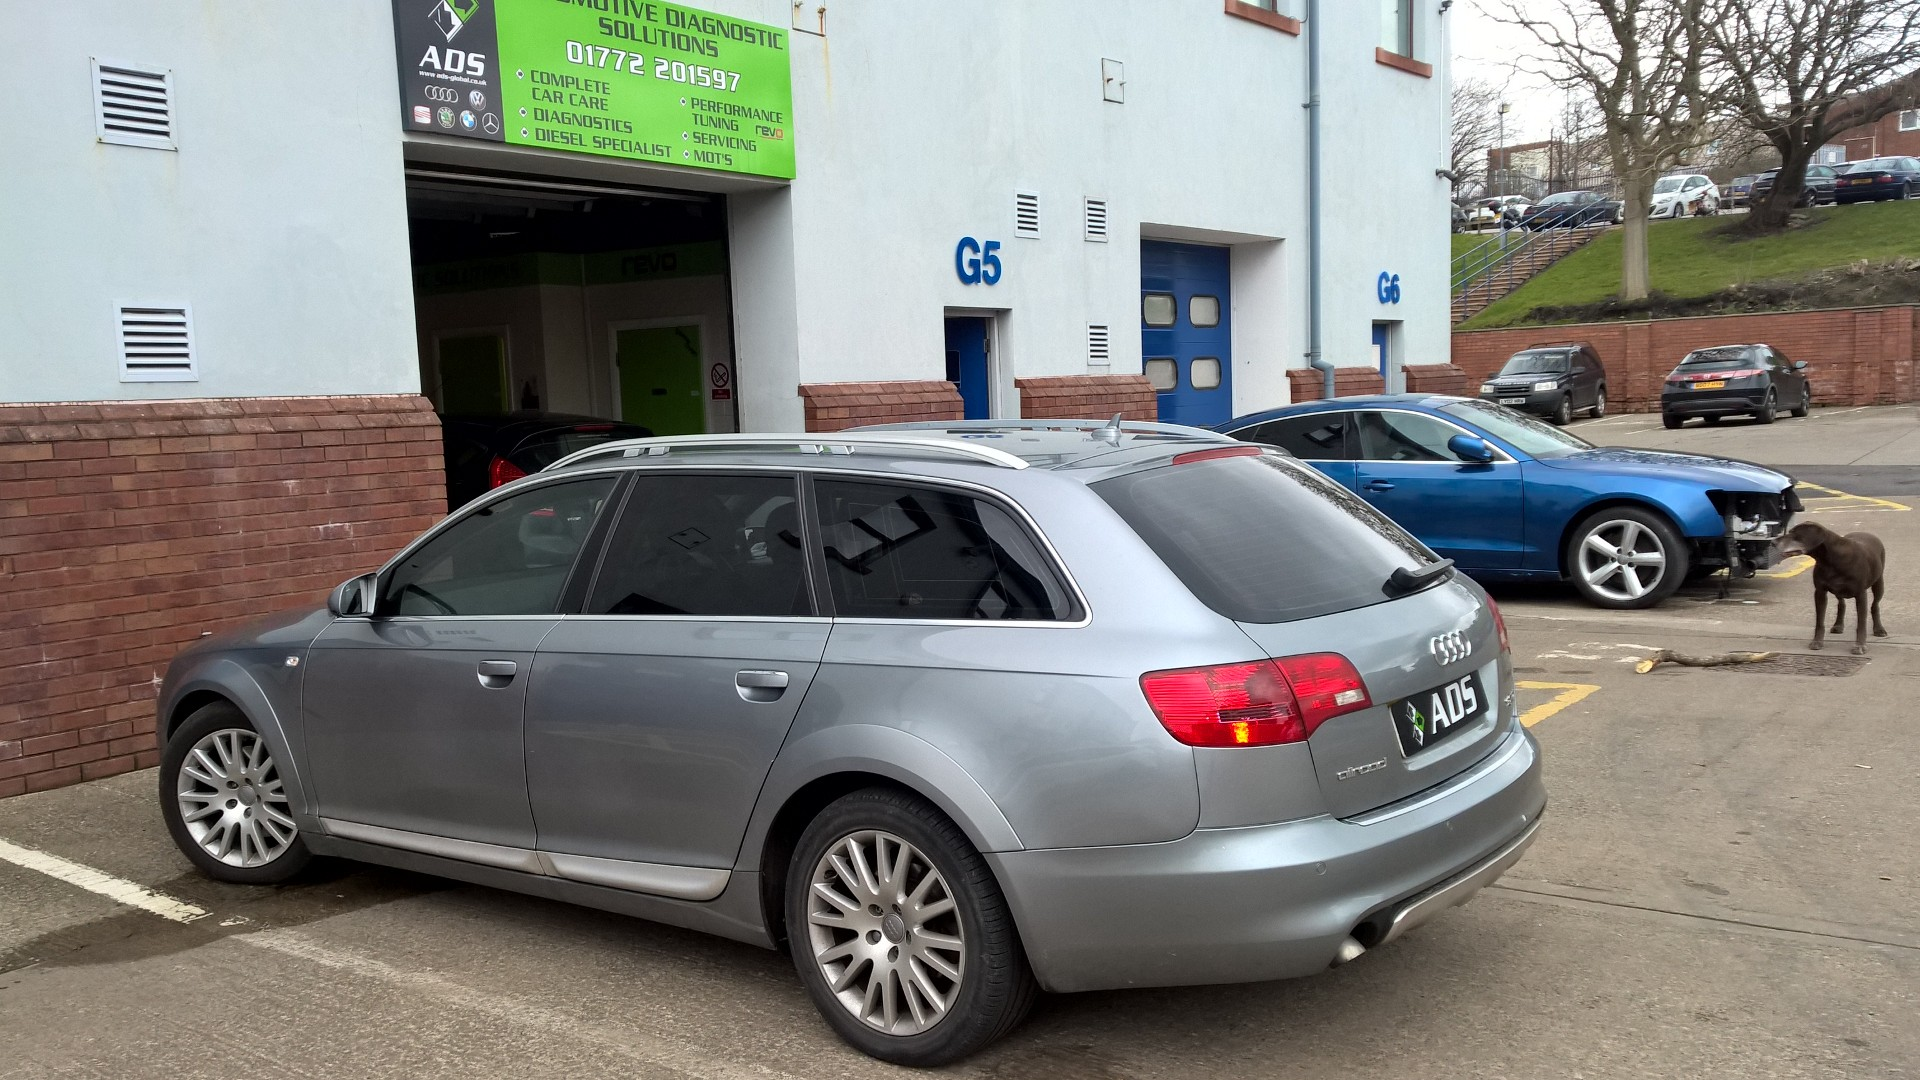 Audi A6 electrical problem diagnostics